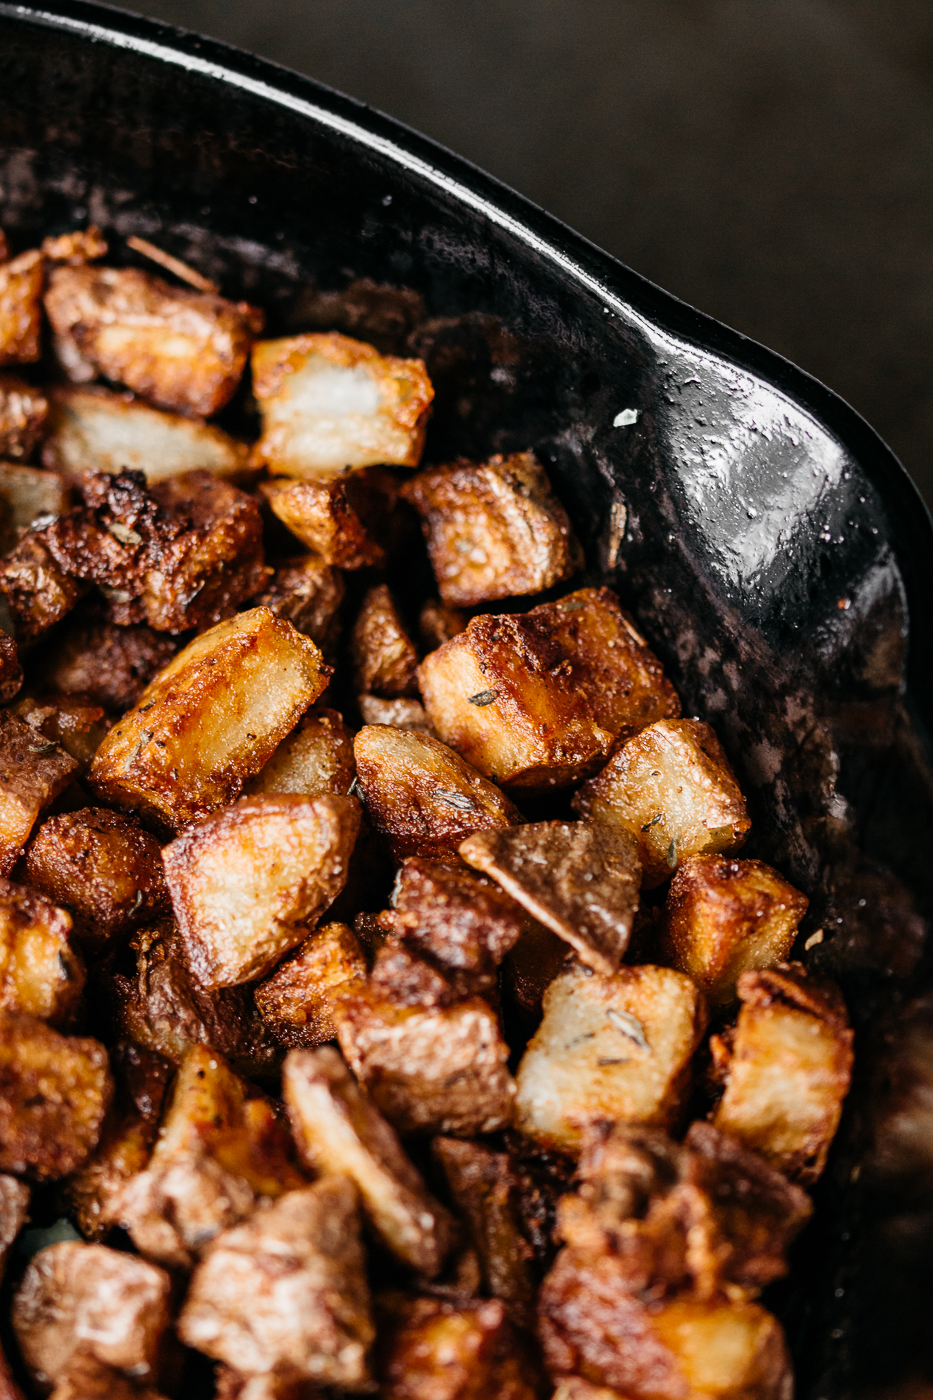 herbed skillet potatoes, skillet potatoes recipe, cast iron skillet dinners, southern cooking blog, brunch side dishes